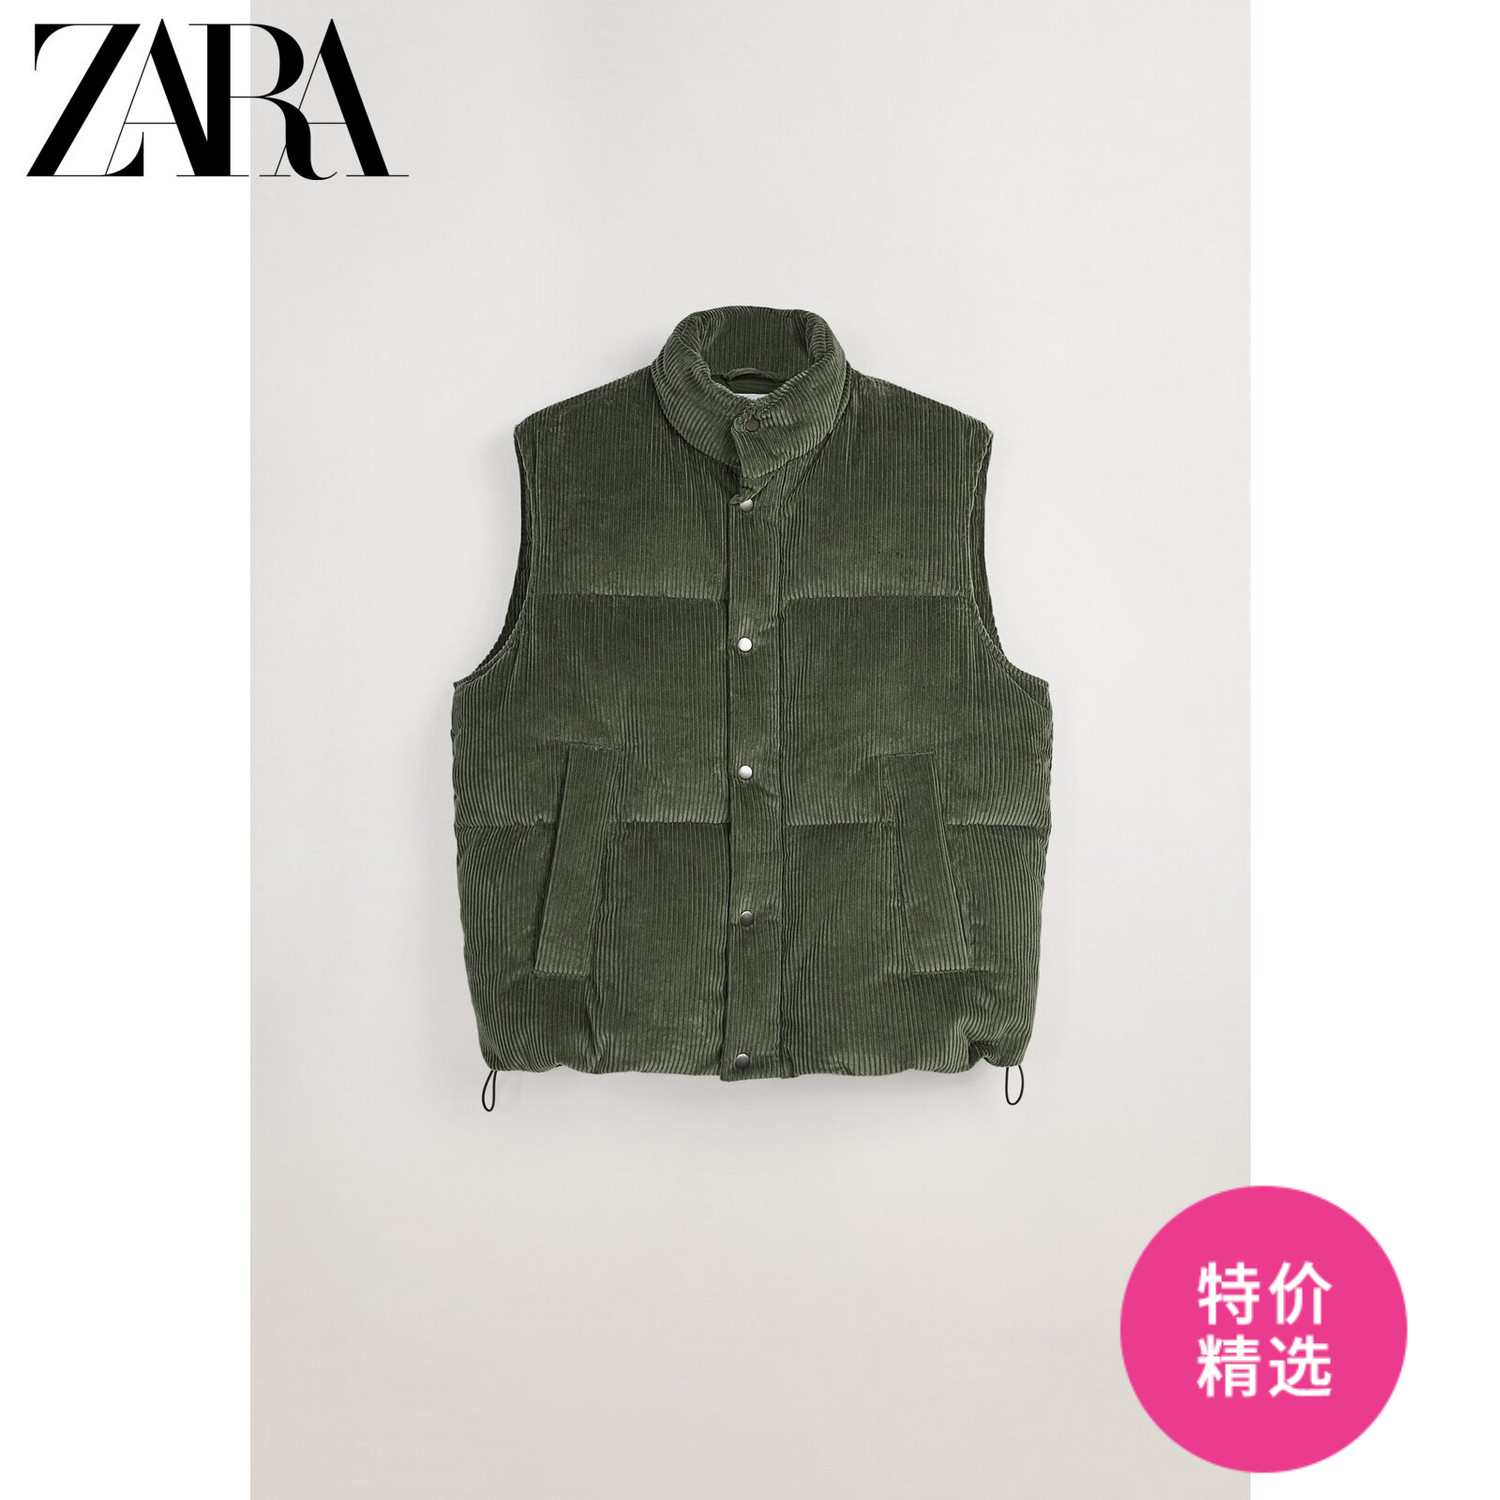 Zara new men's corduroy cotton vest vest 05320316500